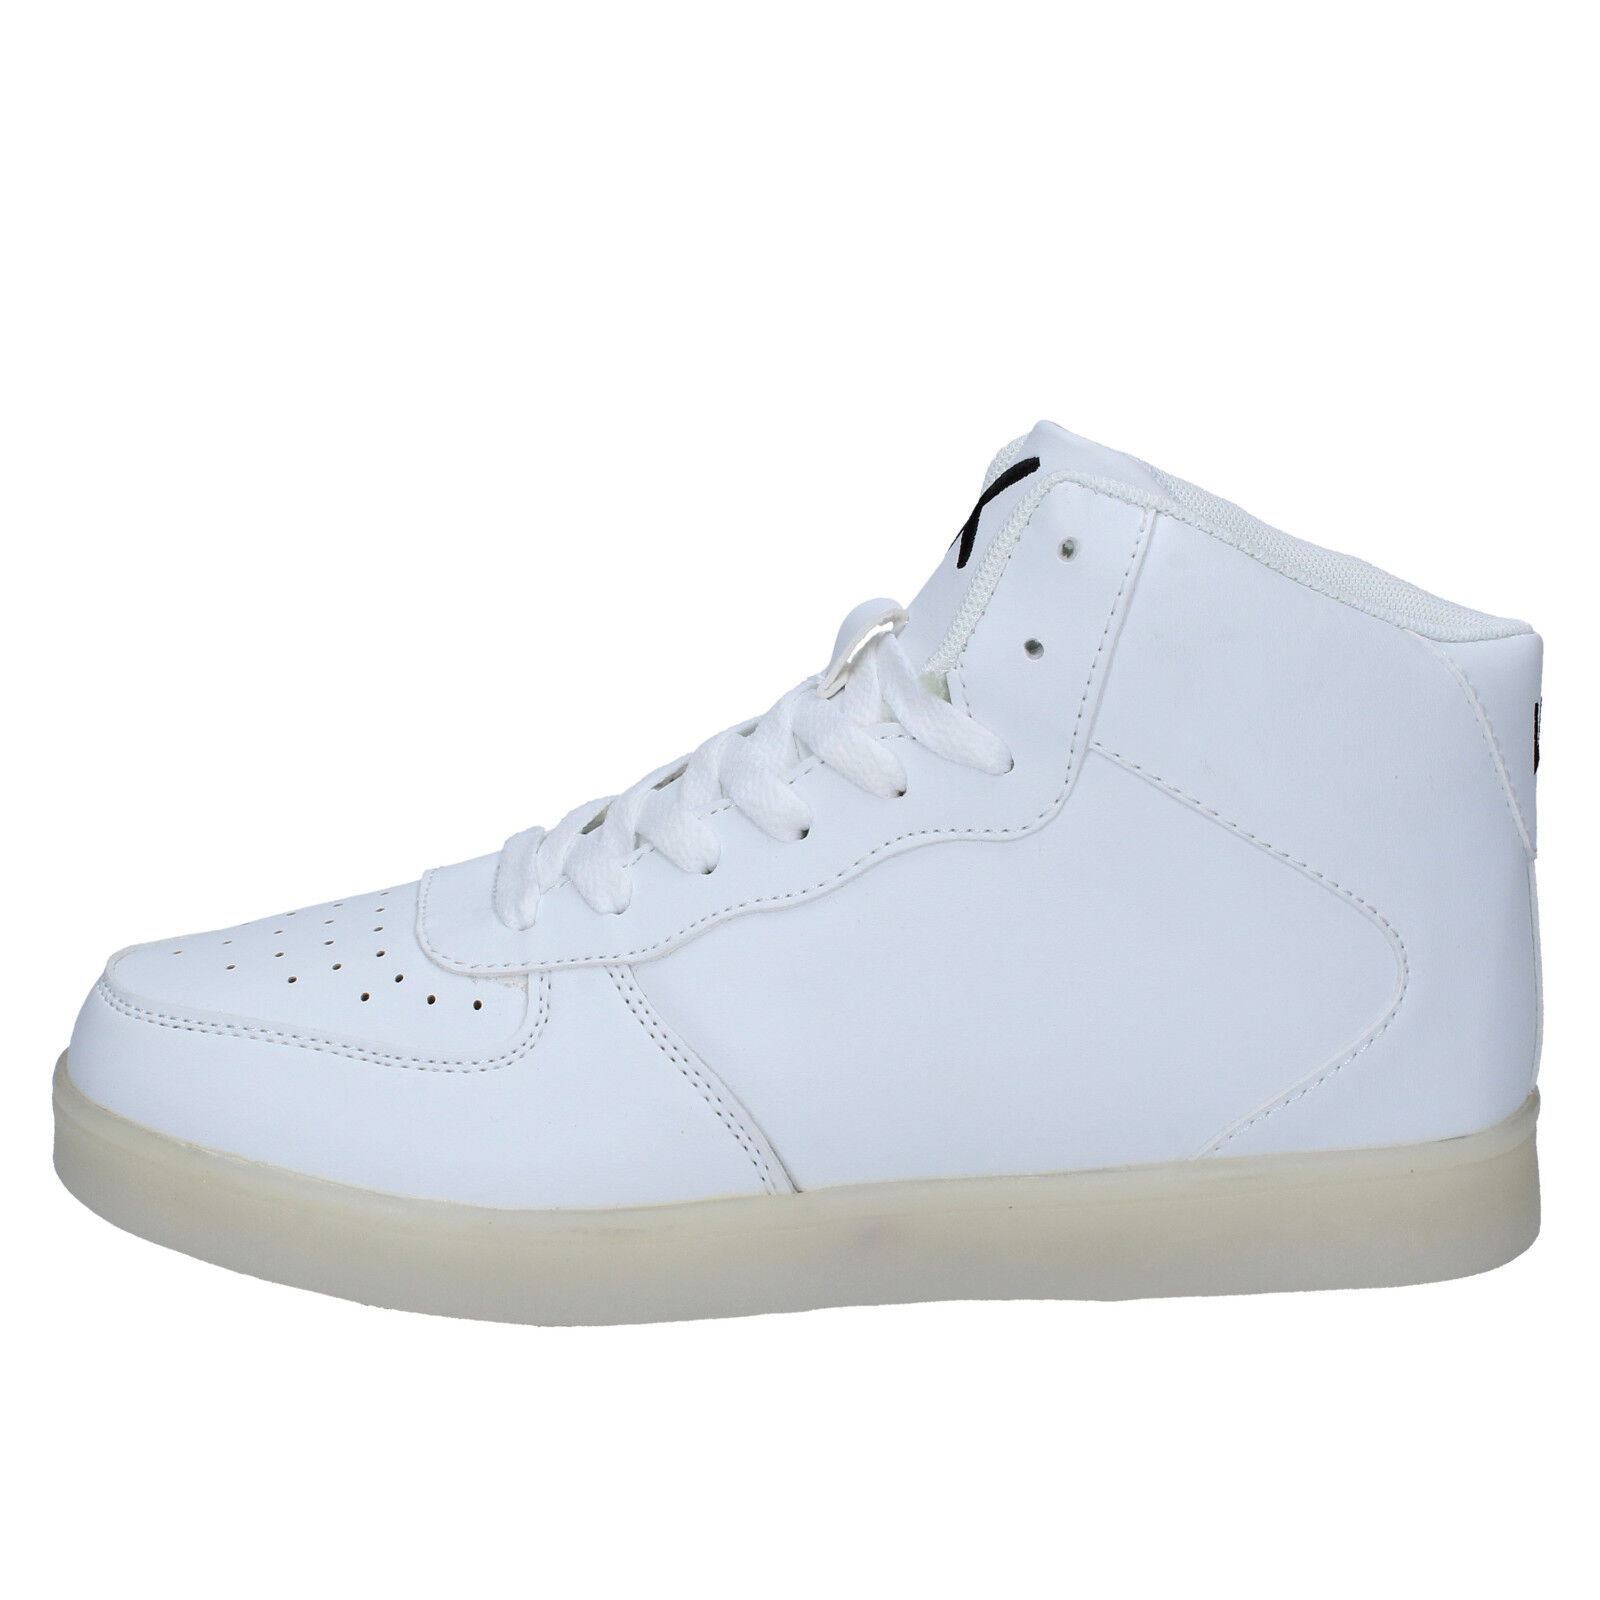 Mens shoes WIZE & OPE 6 () sneakers white leather BY890-40